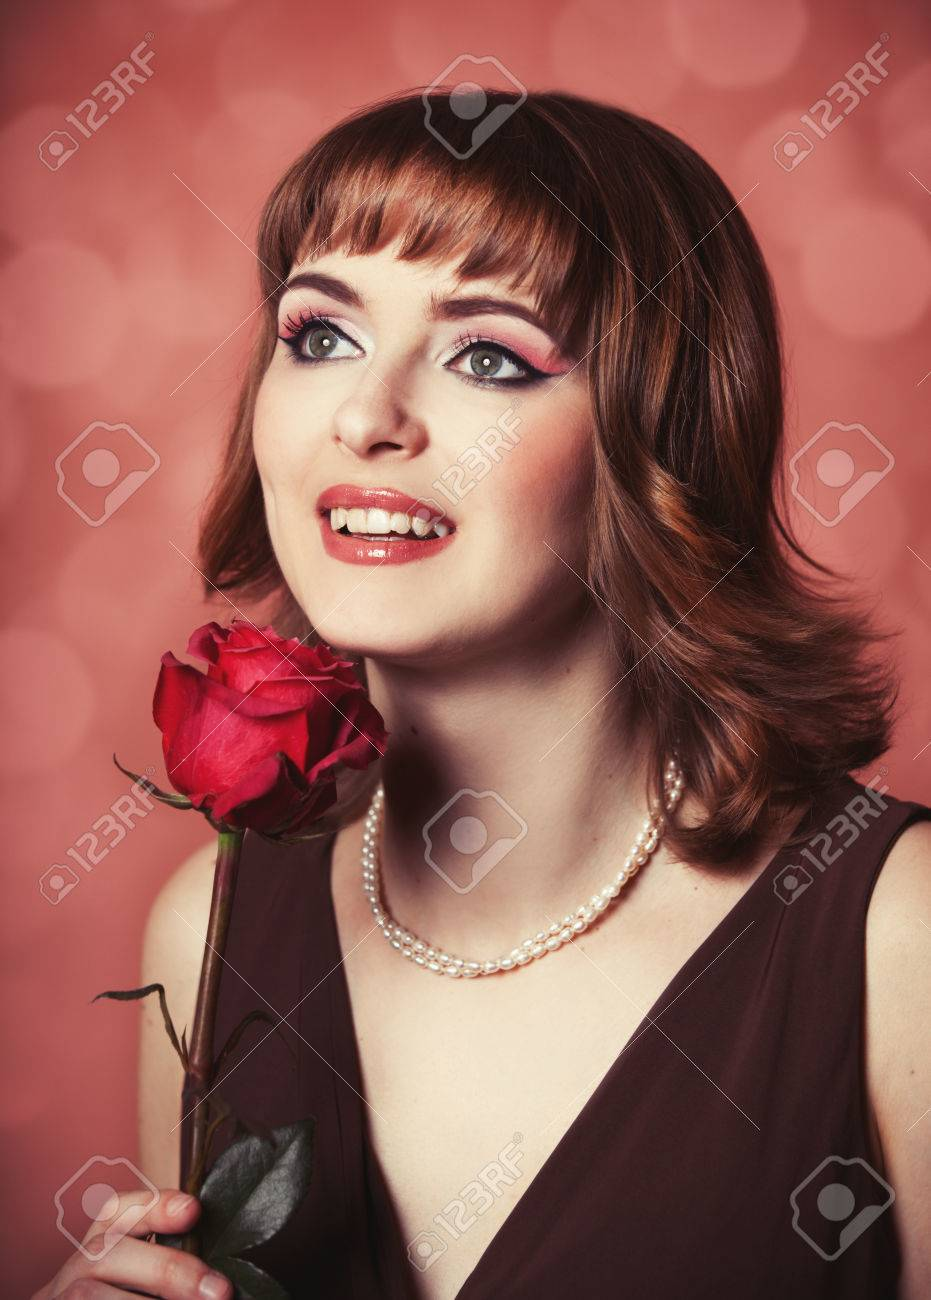 Portrait of a women with <b>rose. Photo</b> in 60s style. - 25430557-Portrait-of-a-women-with-rose-Photo-in-60s-style--Stock-Photo